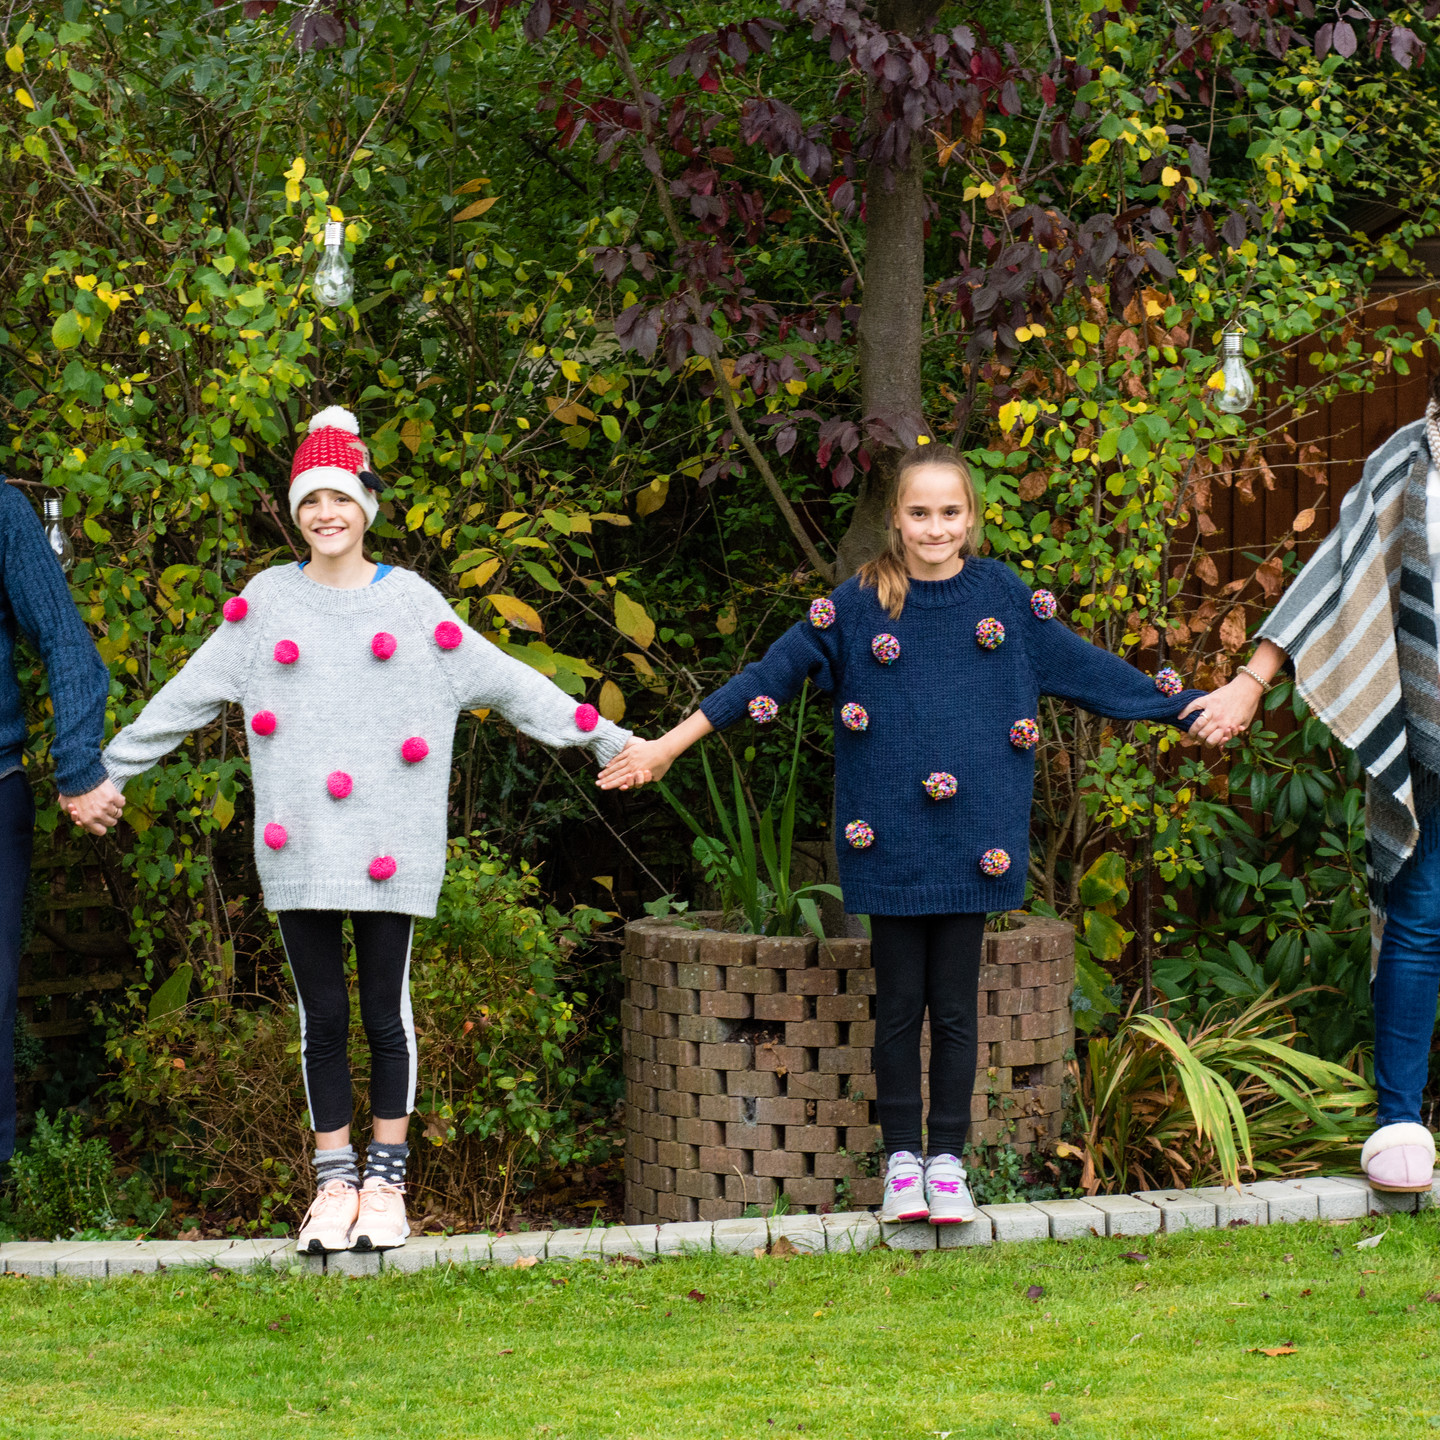 Family Photographer Solihull, family photo shoot in the back garden fun natural photograph holding hands